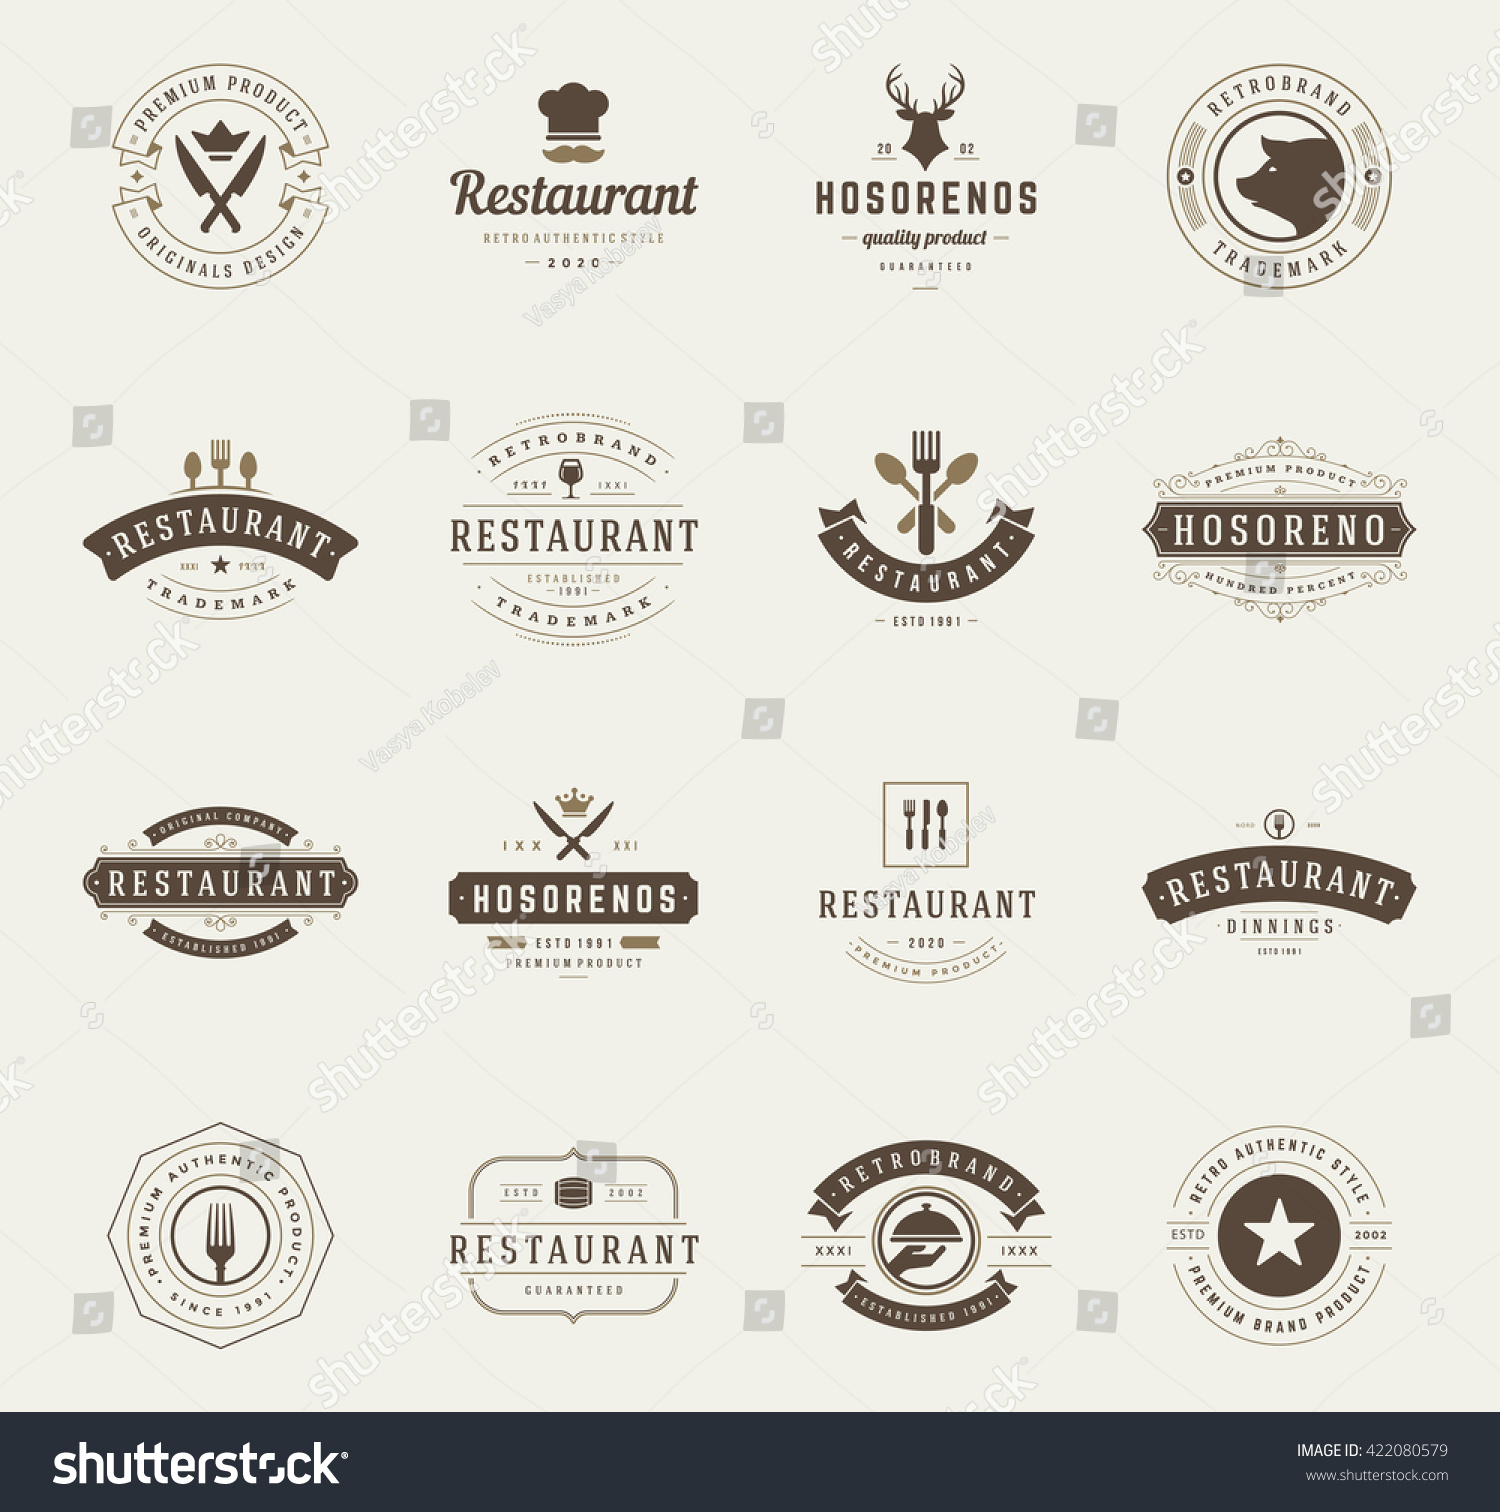 Royalty free vintage restaurant logos design 422080579 stock vintage restaurant logos design templates set vector design elements restaurant and cafe icons buycottarizona Image collections